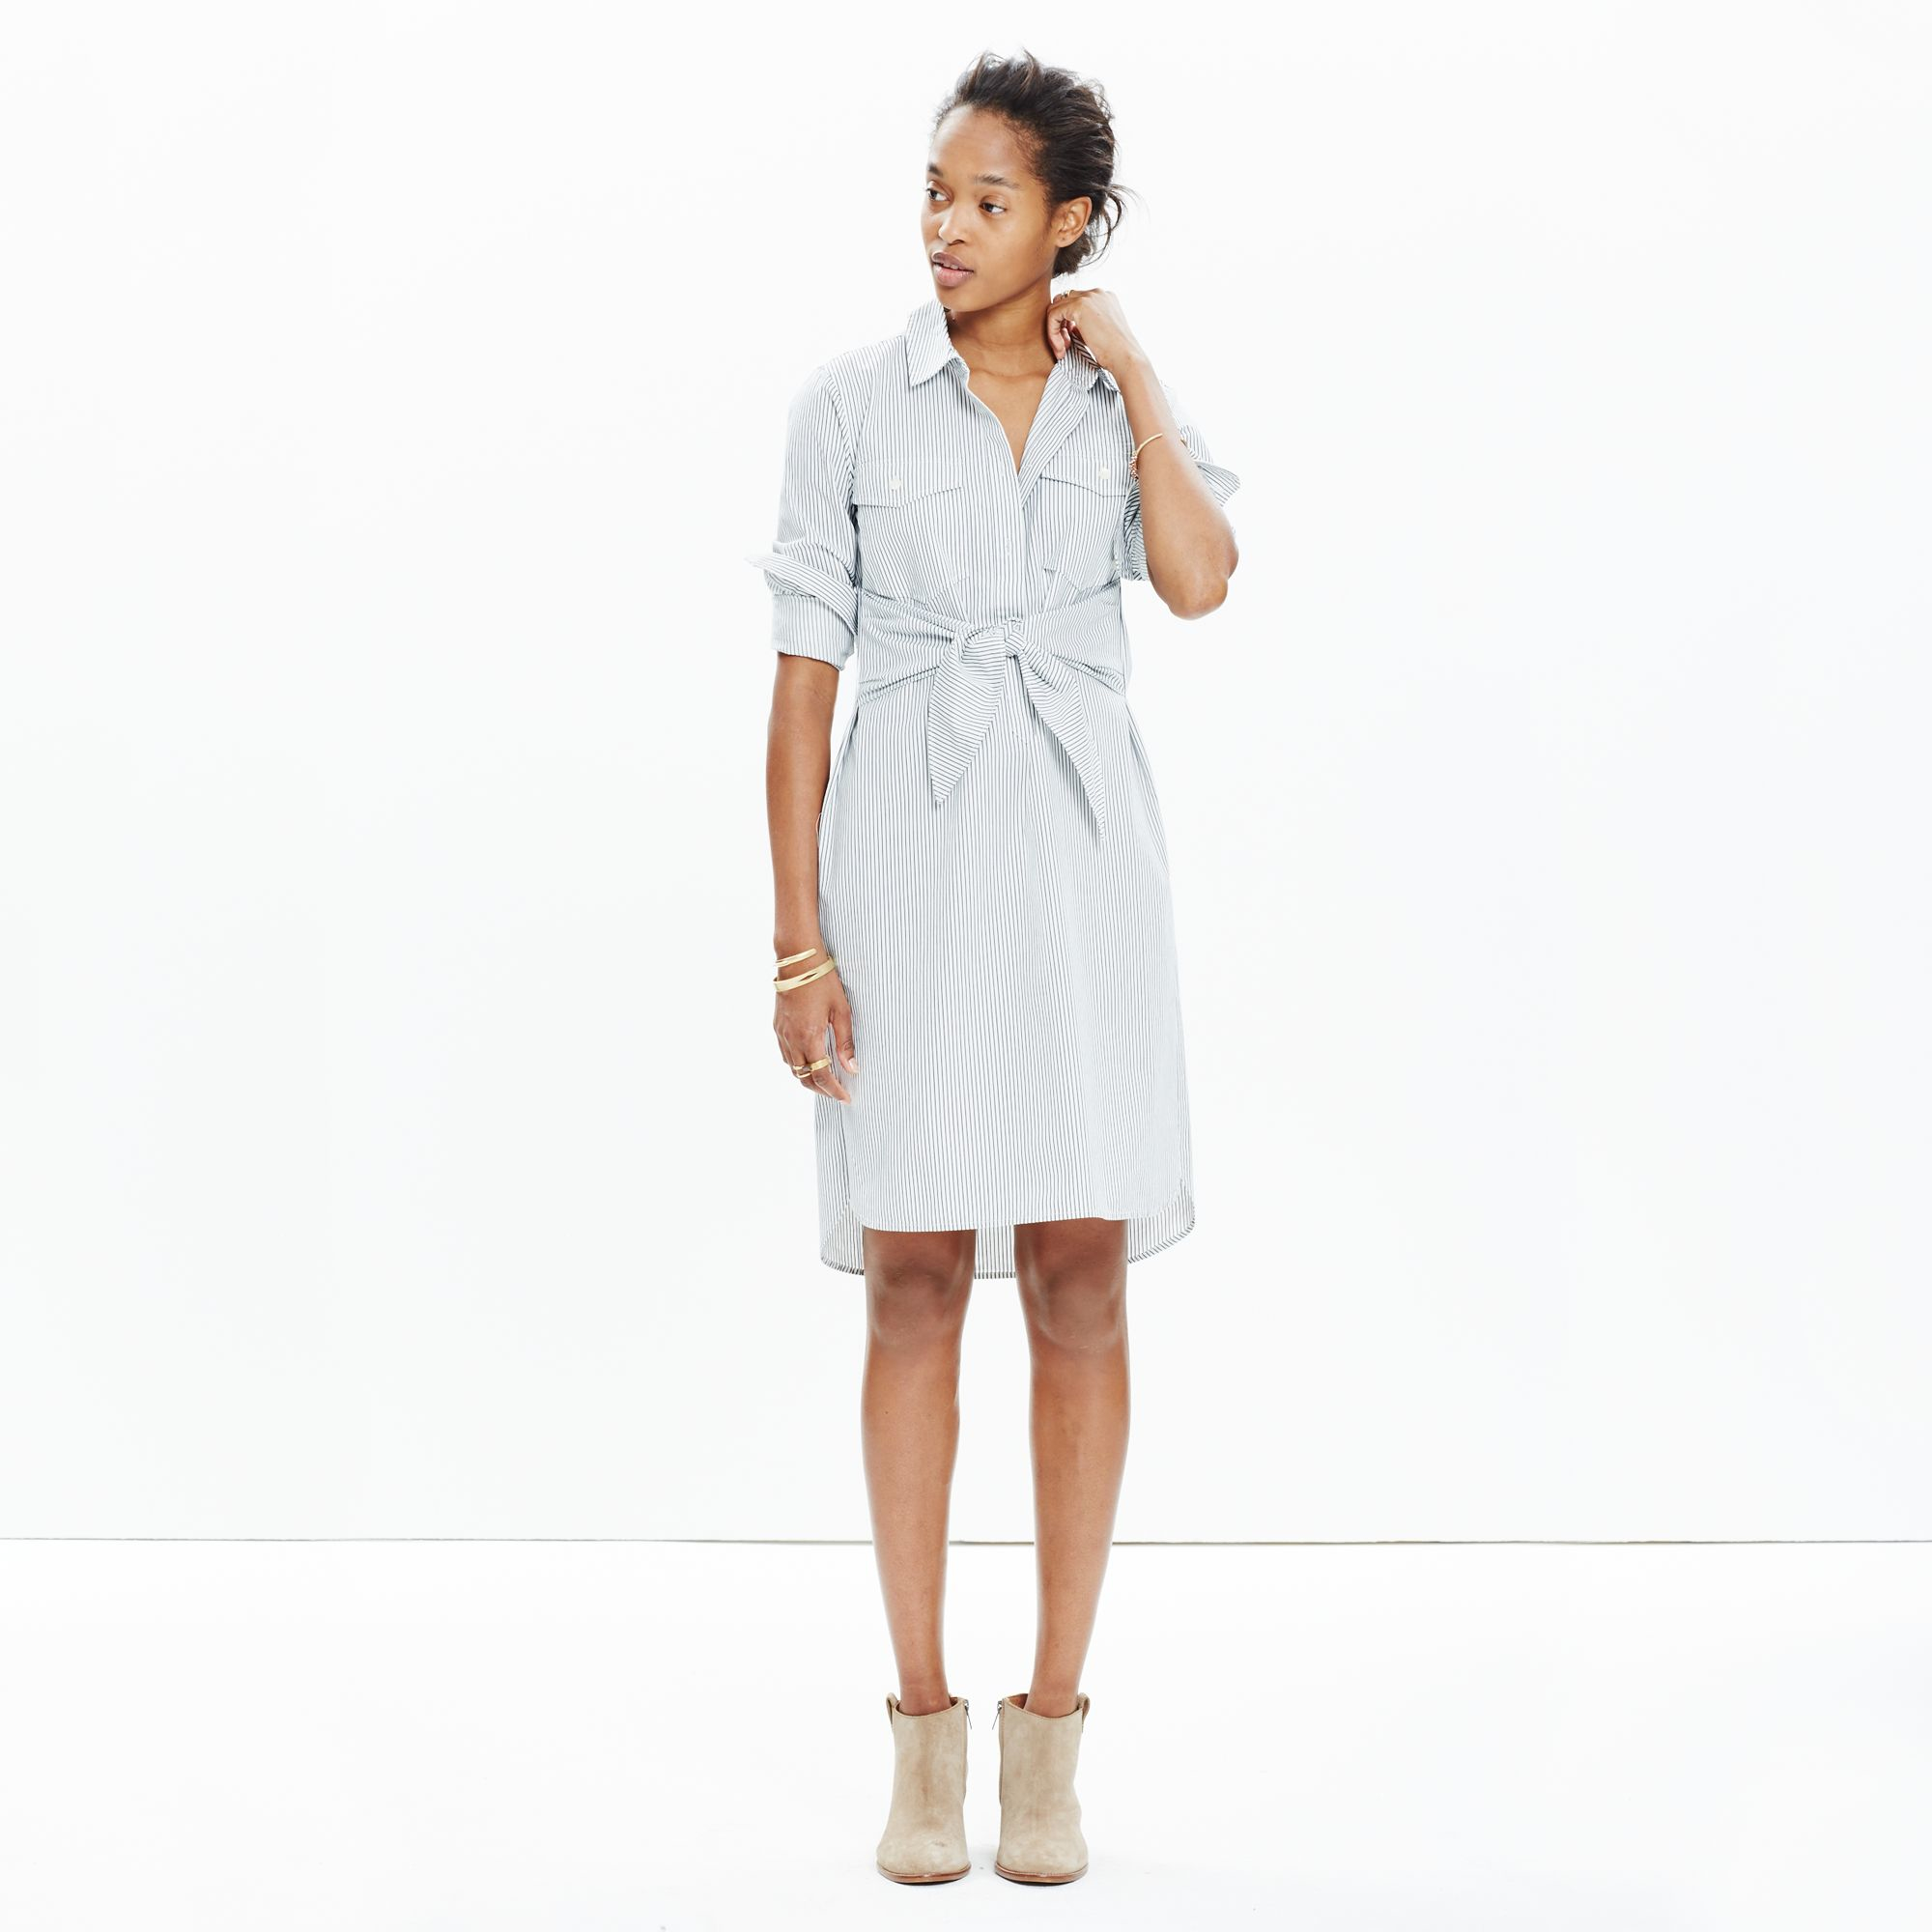 5691a438c13 Madewell Striped Tie-waist Shirtdress in White - Lyst